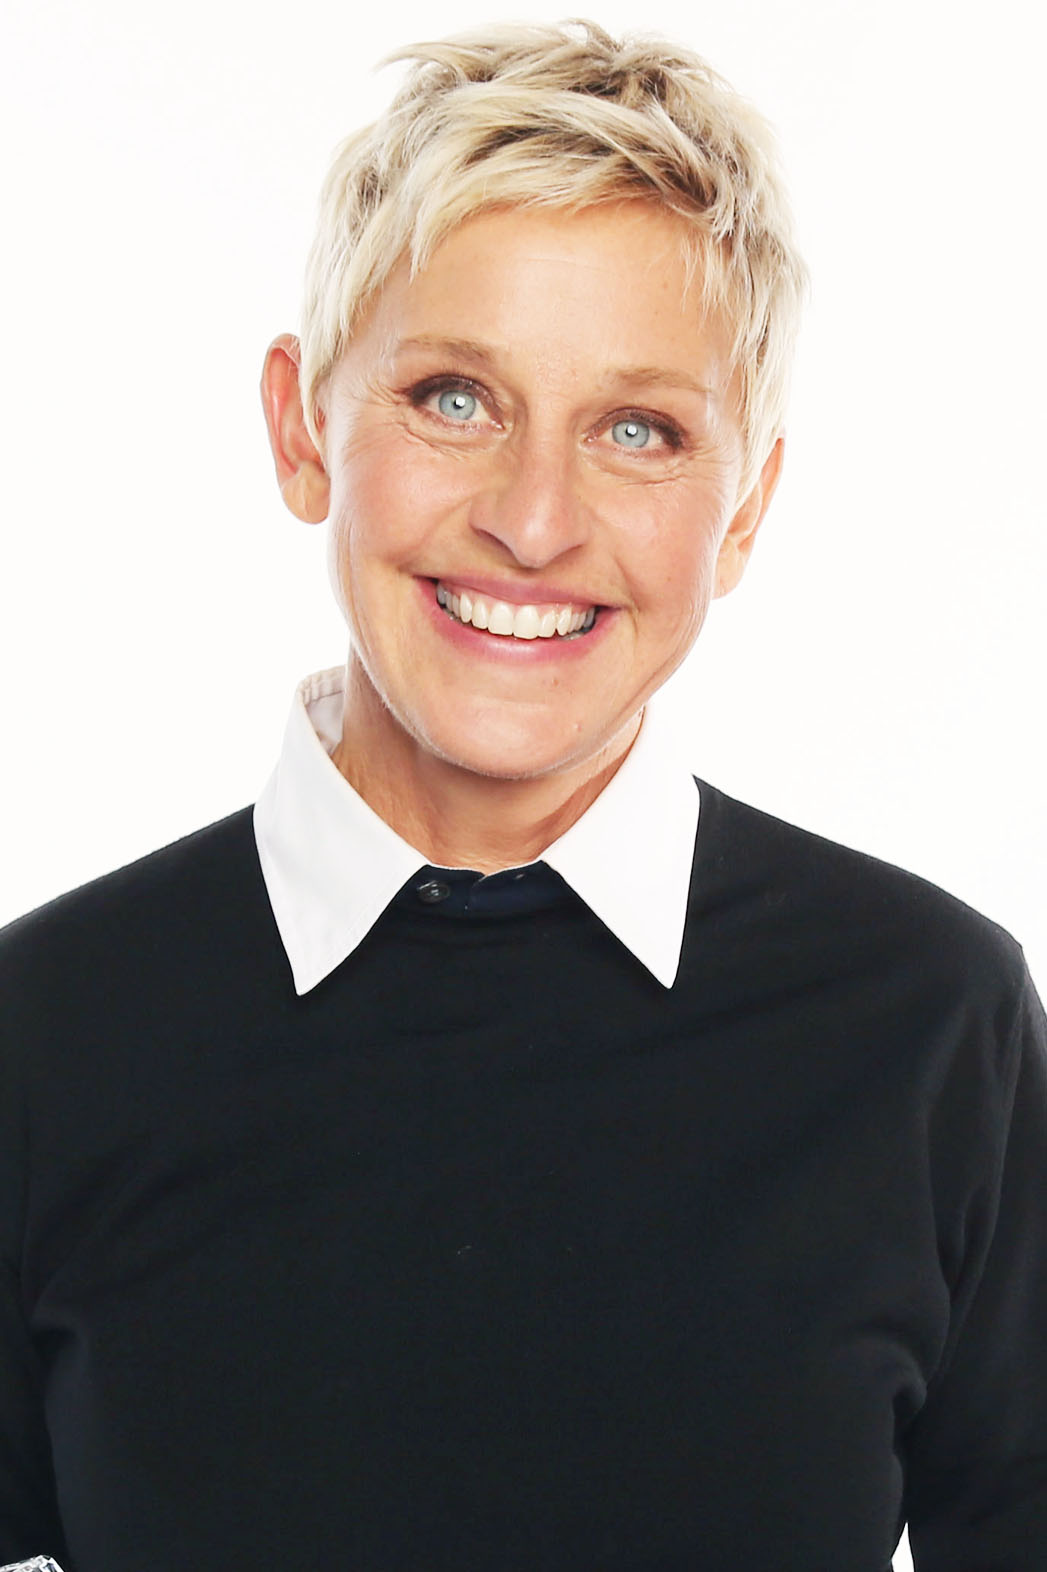 Ellen DeGeneres - First person to play an openly gay character on primetime television